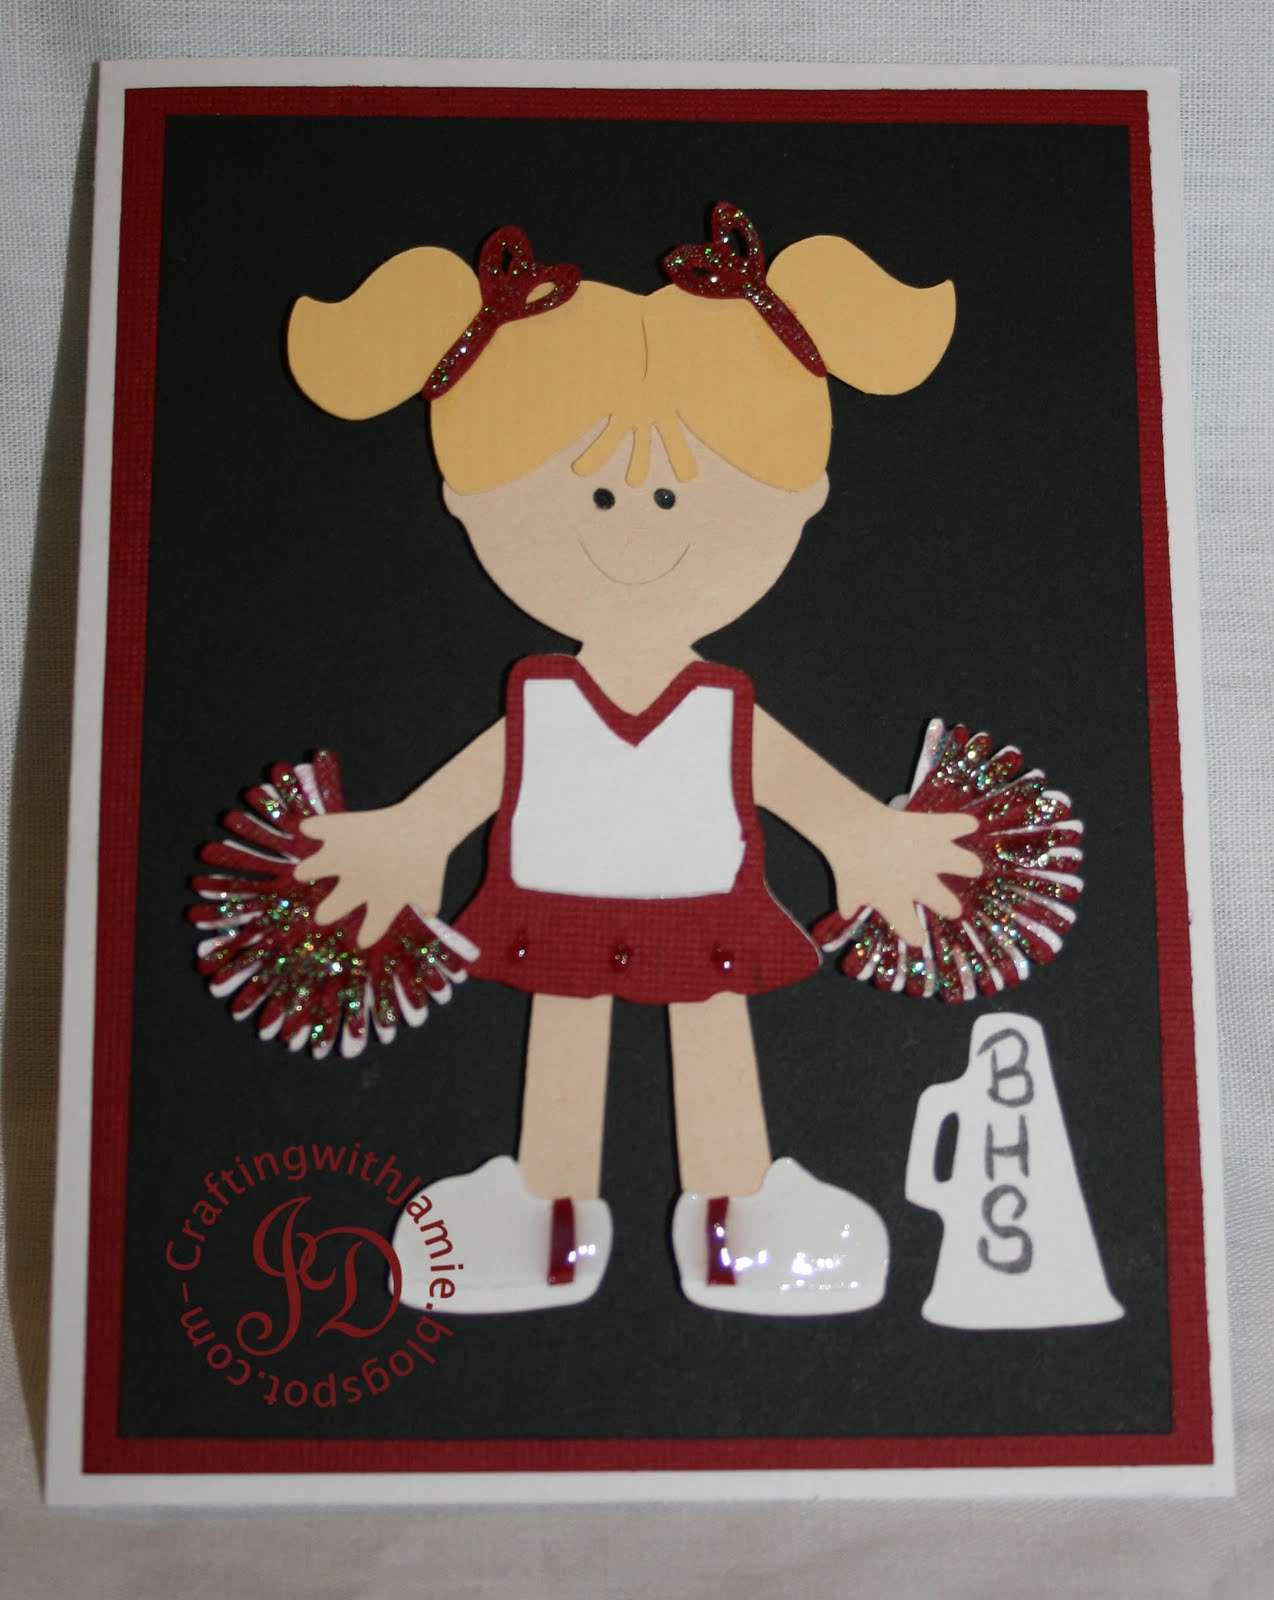 http://2.bp.blogspot.com/-MEDE5ppeyIM/TcYLuEnds-I/AAAAAAAAAJs/MLrUXZV2-Is/s1600/Cheerleader.JPG